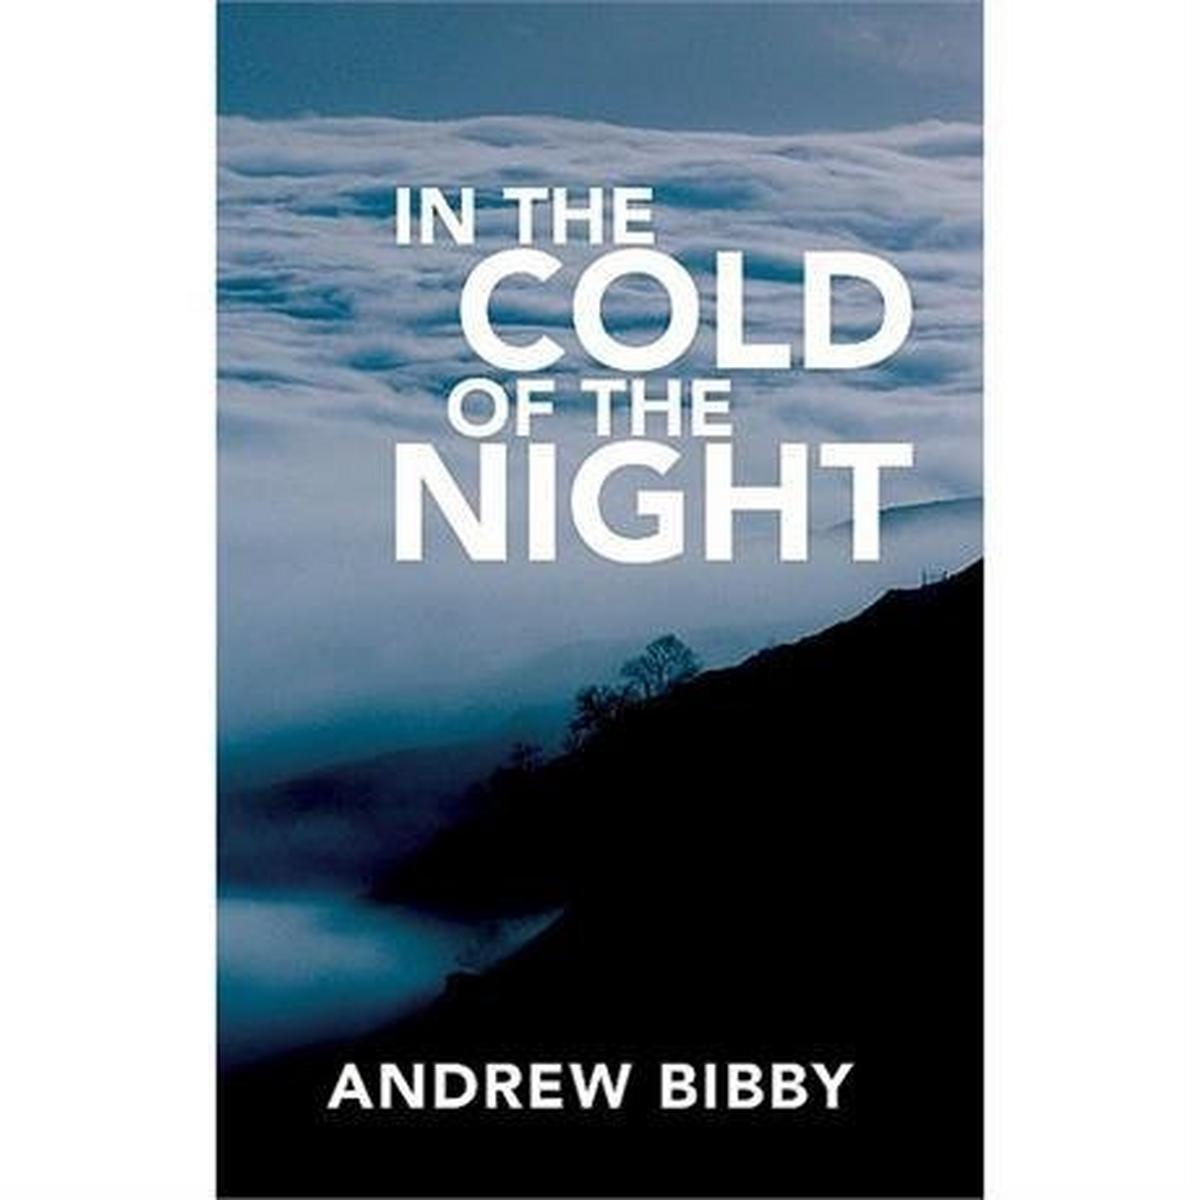 Miscellaneous Book: In the Cold of the Night - Andrew Bibby